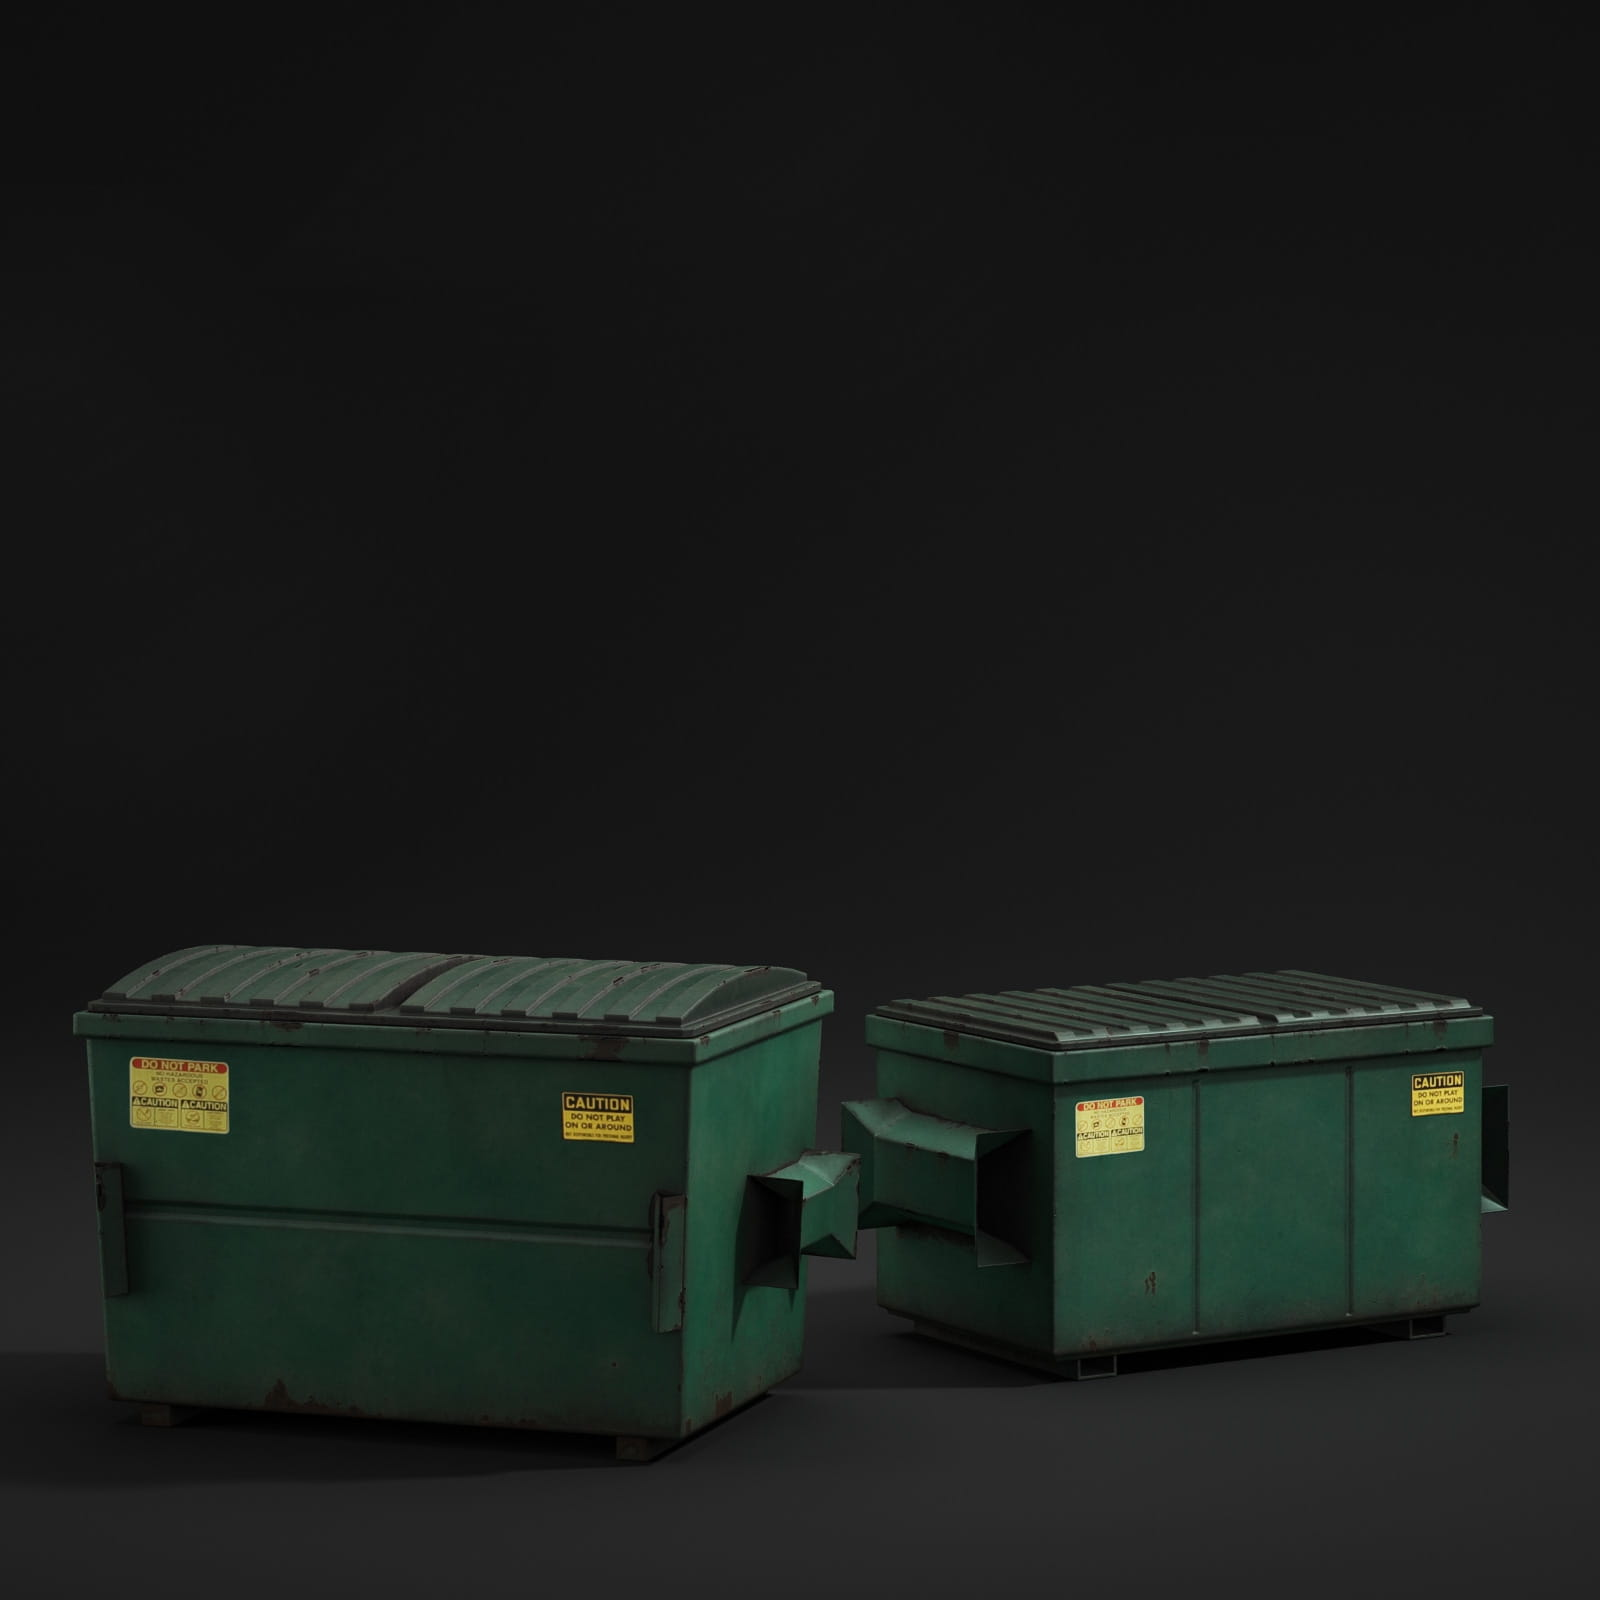 dumpsters 57 AM211 Archmodels